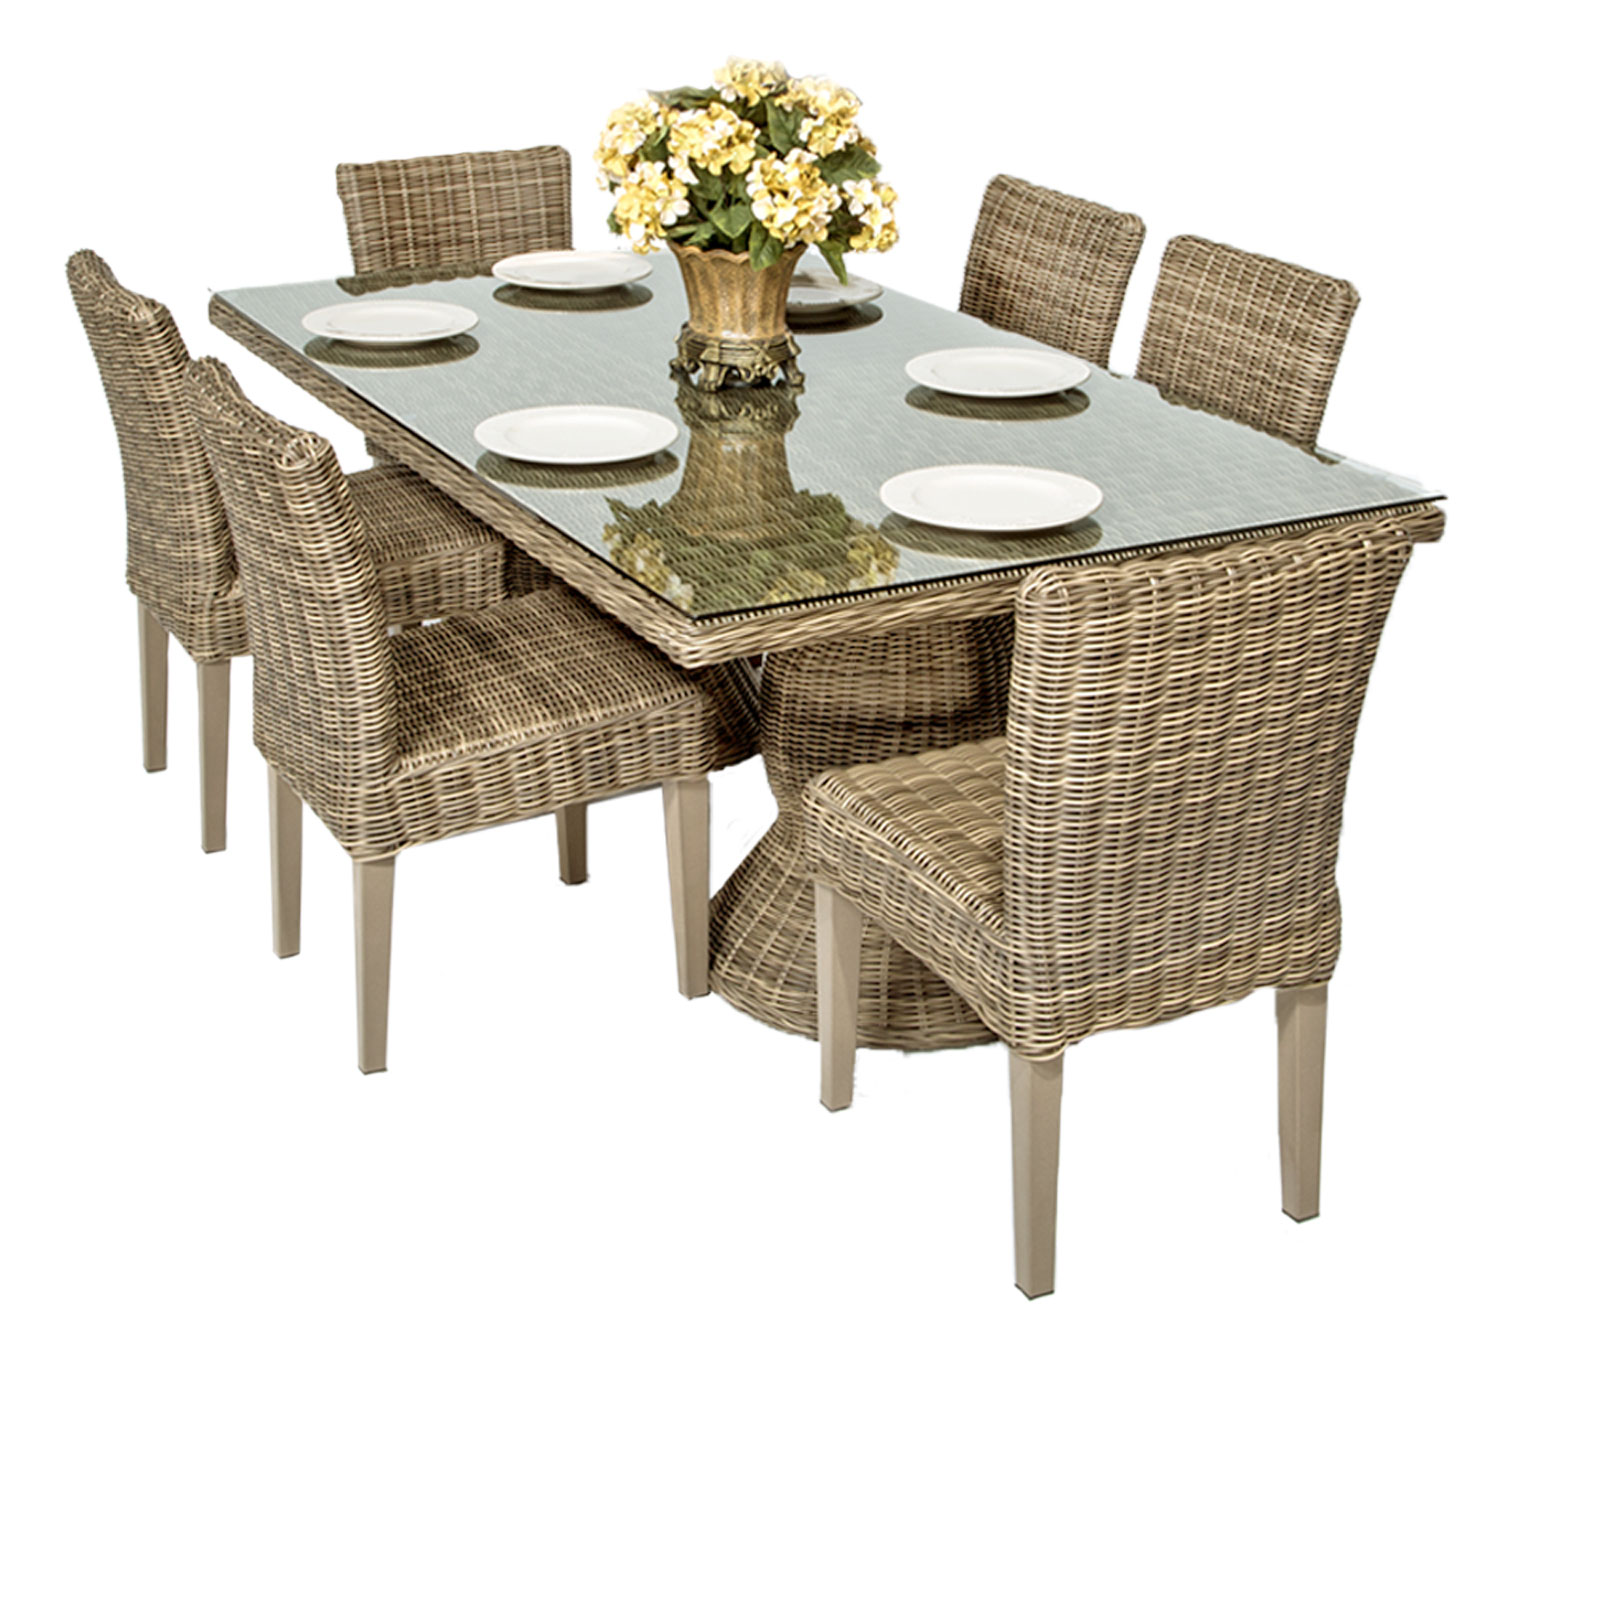 Stone Table & Chairs Discount Outdoor Furniture Sets